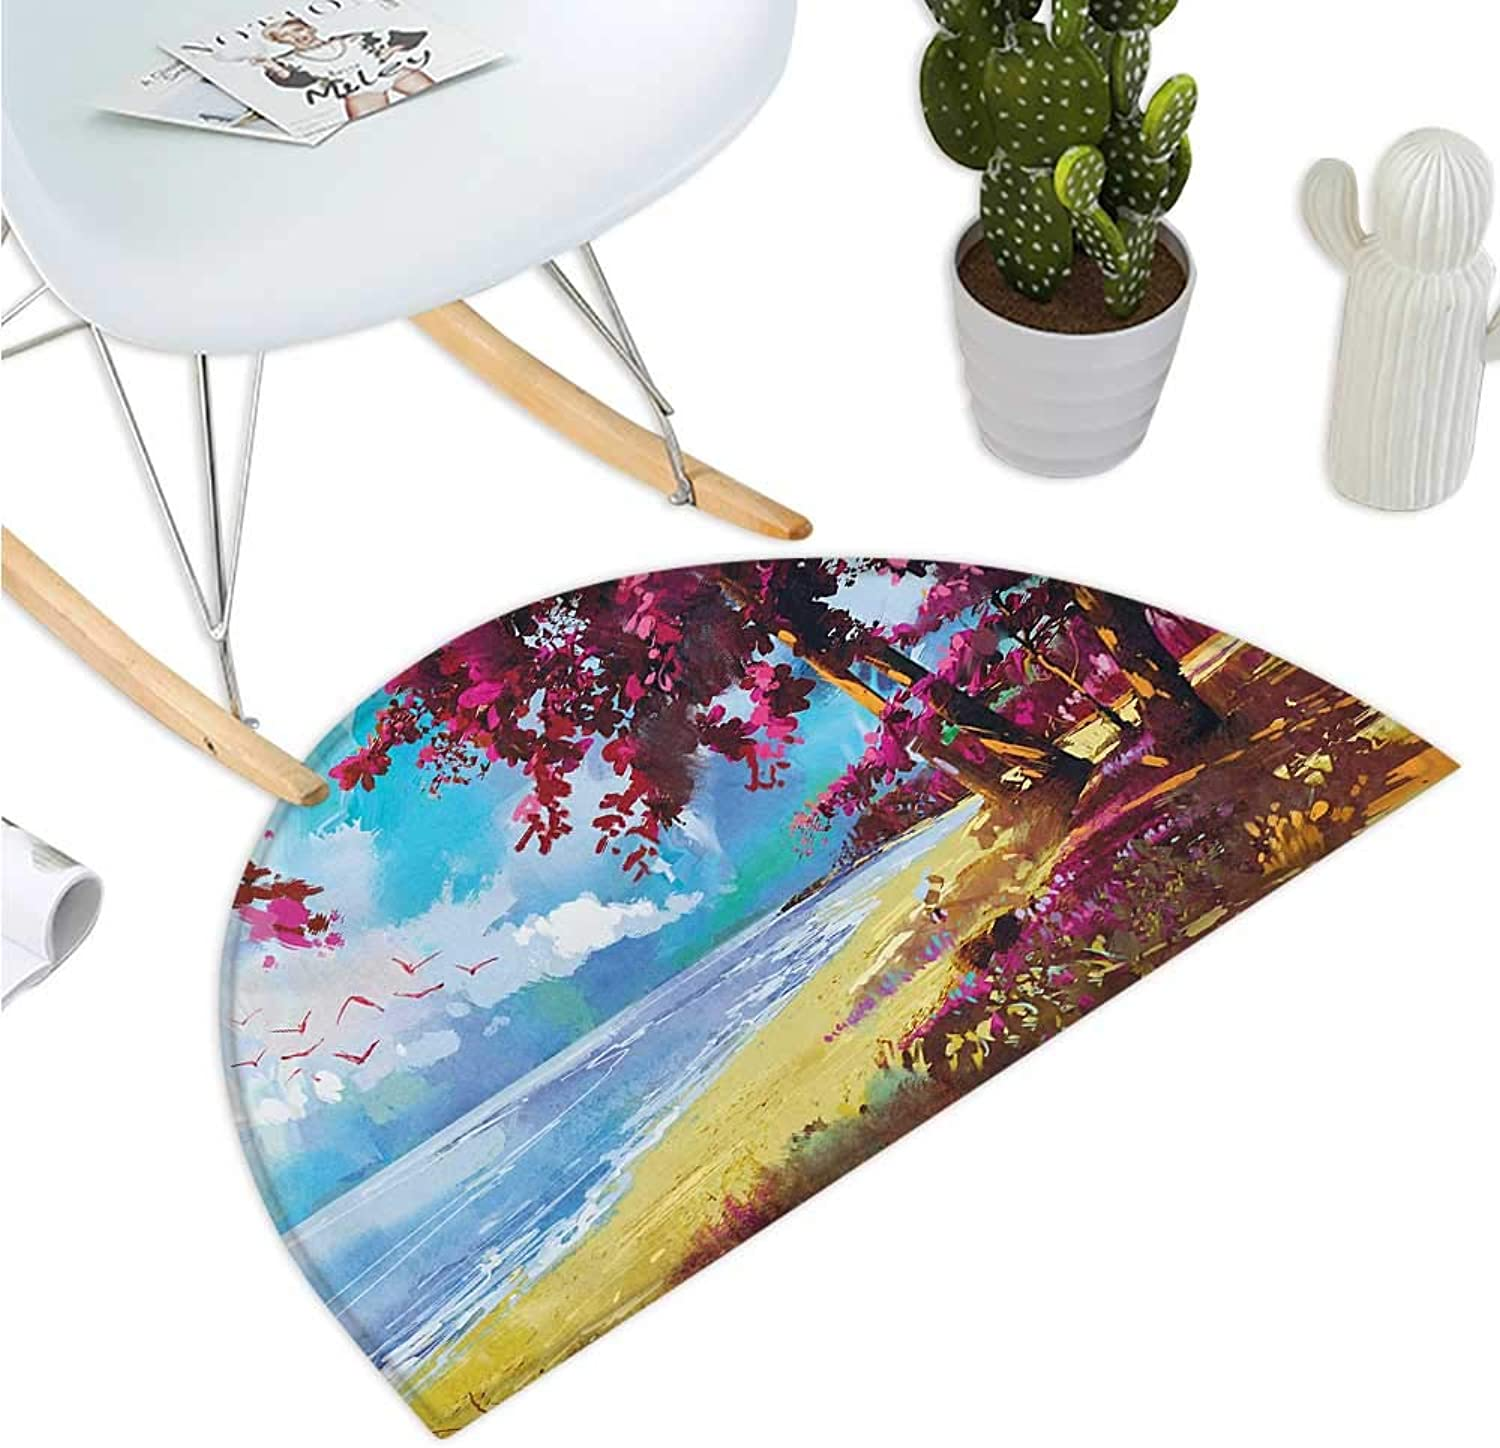 Seascape Semicircular Cushion Floral colord Blossom Trees on Tropic Sandy Beach Seascape Summer Print Bathroom Mat H 35.4  xD 53.1  bluee Pink Cream